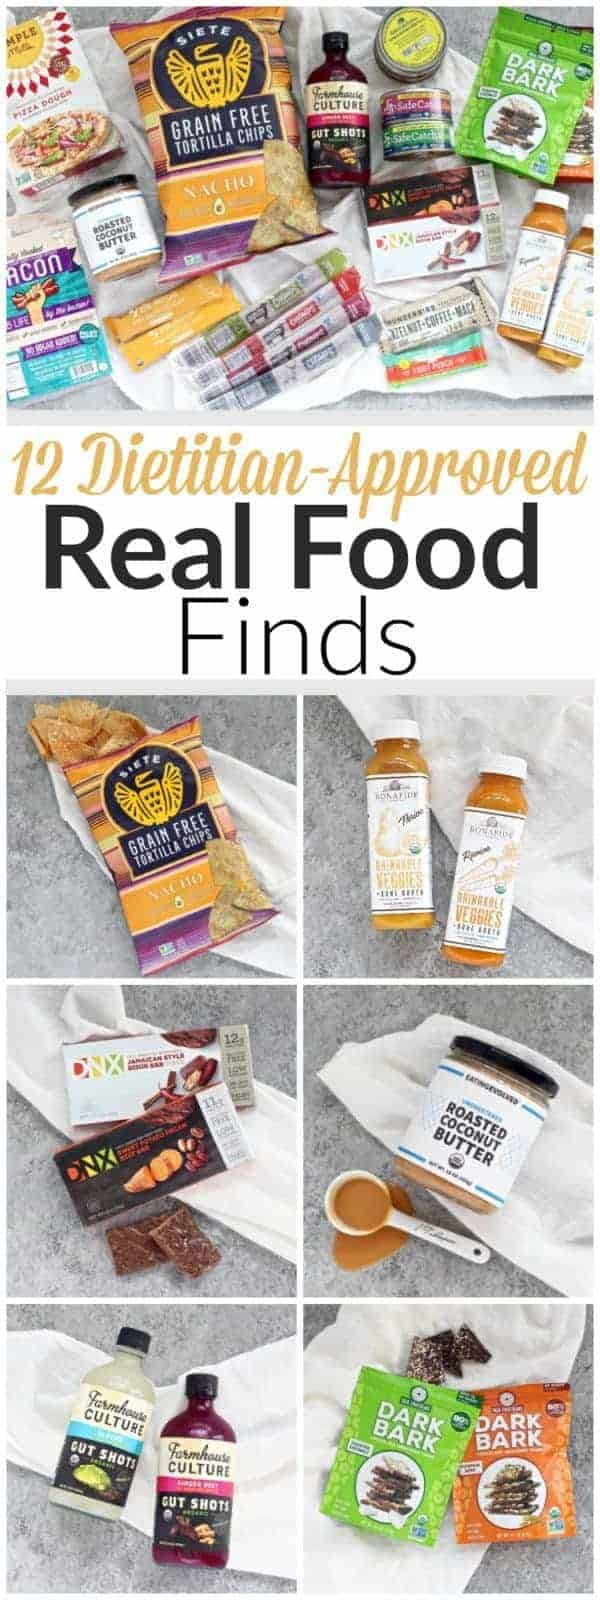 12 Dietitian-Approved Real Food Finds you need to know about. | The Real Food Dietitians | https://therealfoodrds.com/real-food-finds-for-may-2017/